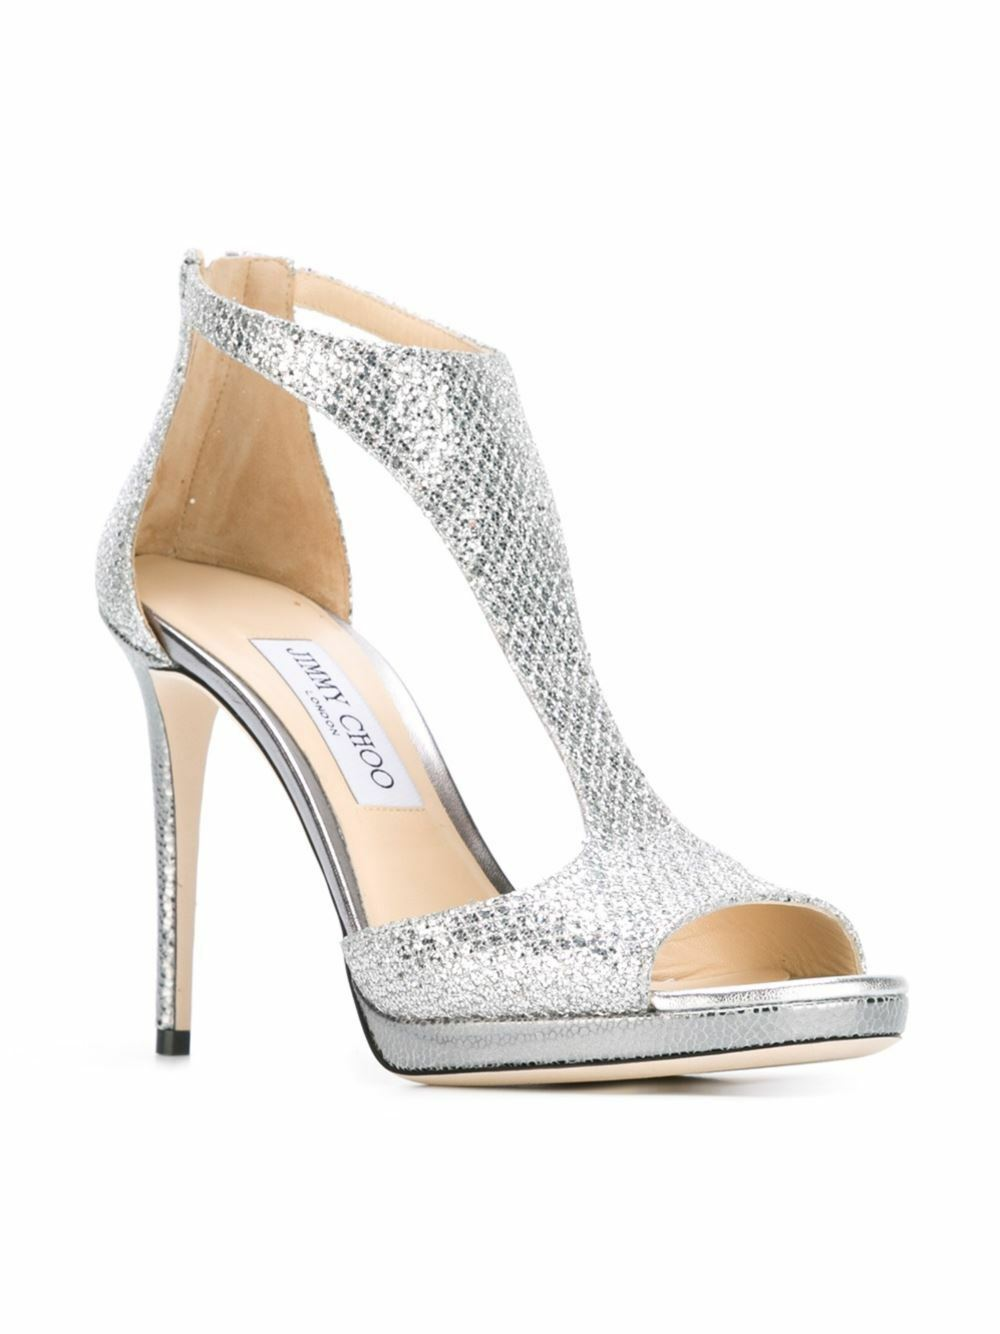 Jimmy Choo Lana 100 Silver Glitter Fabric T-Bar Sandals shoes Size 38  850